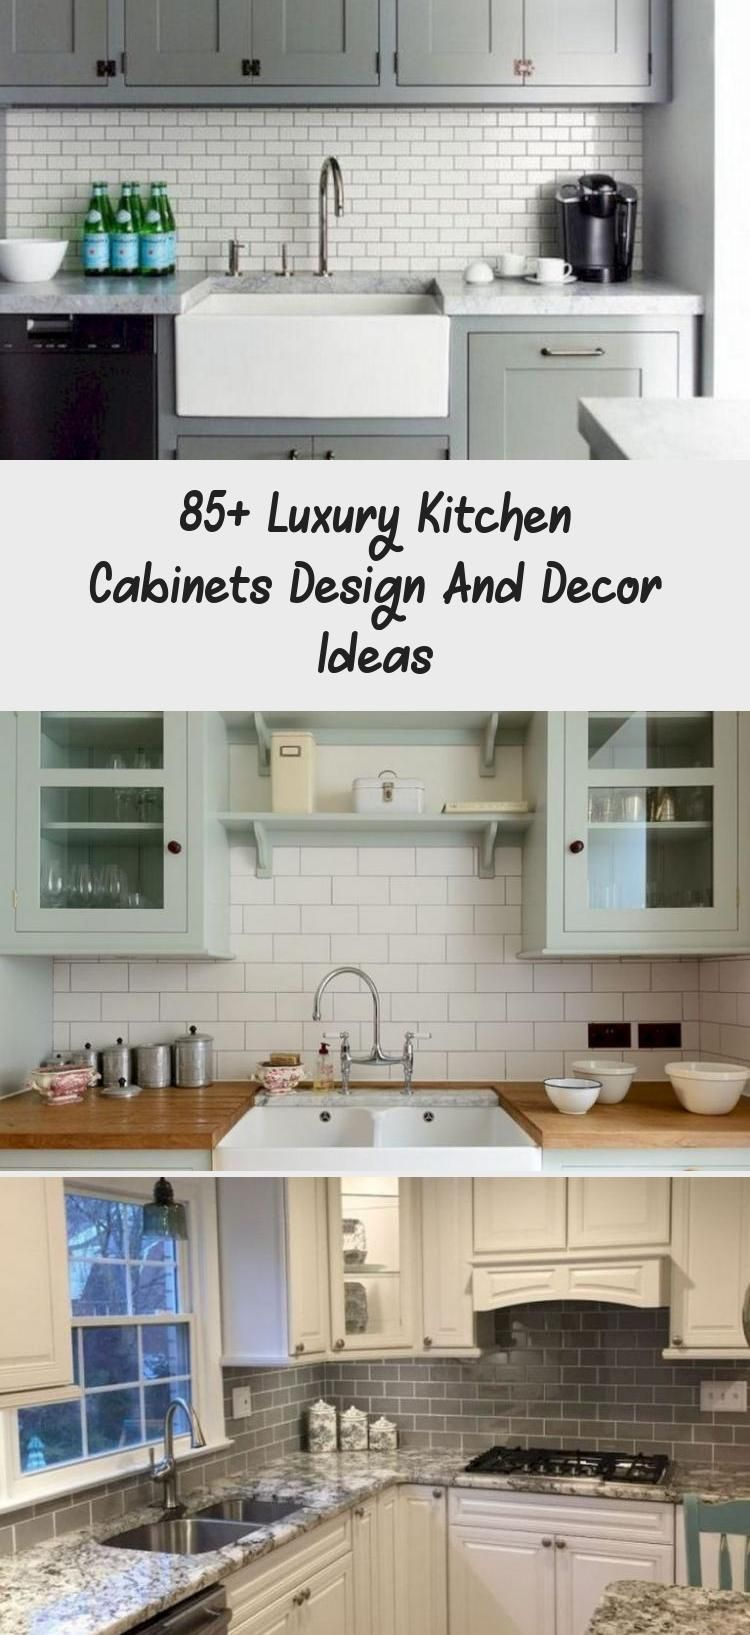 Photo of 85+ Luxury Kitchen Cabinets Design And Decor Ideas – KTCHN